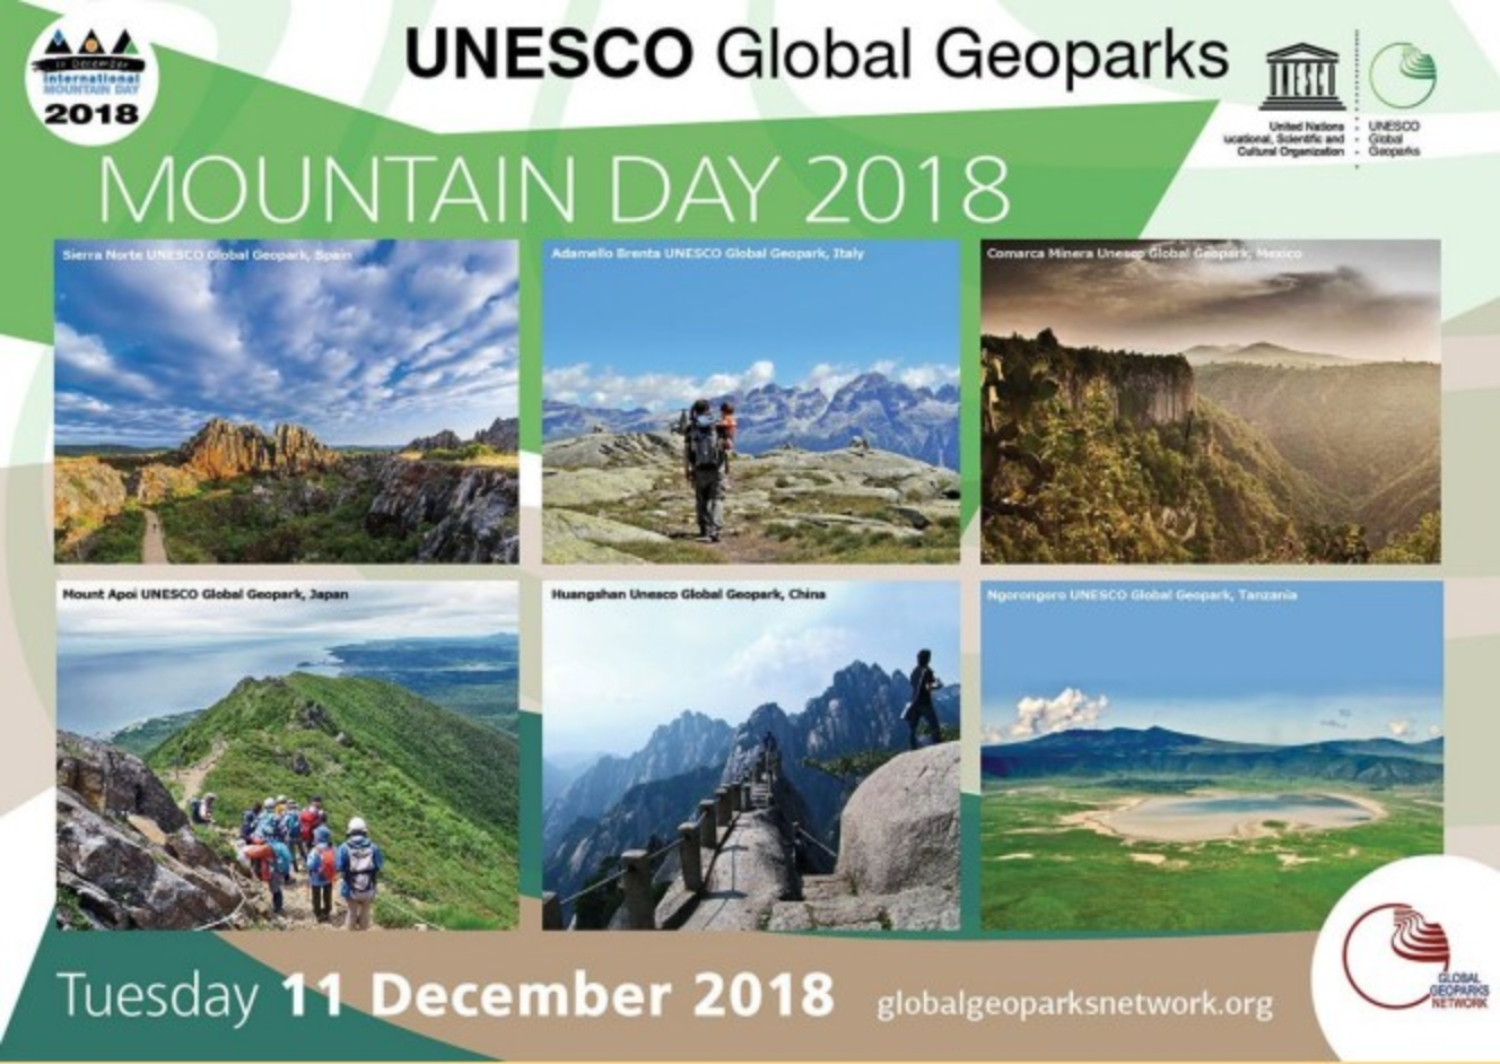 UNESCO global geopark mountain day 2018